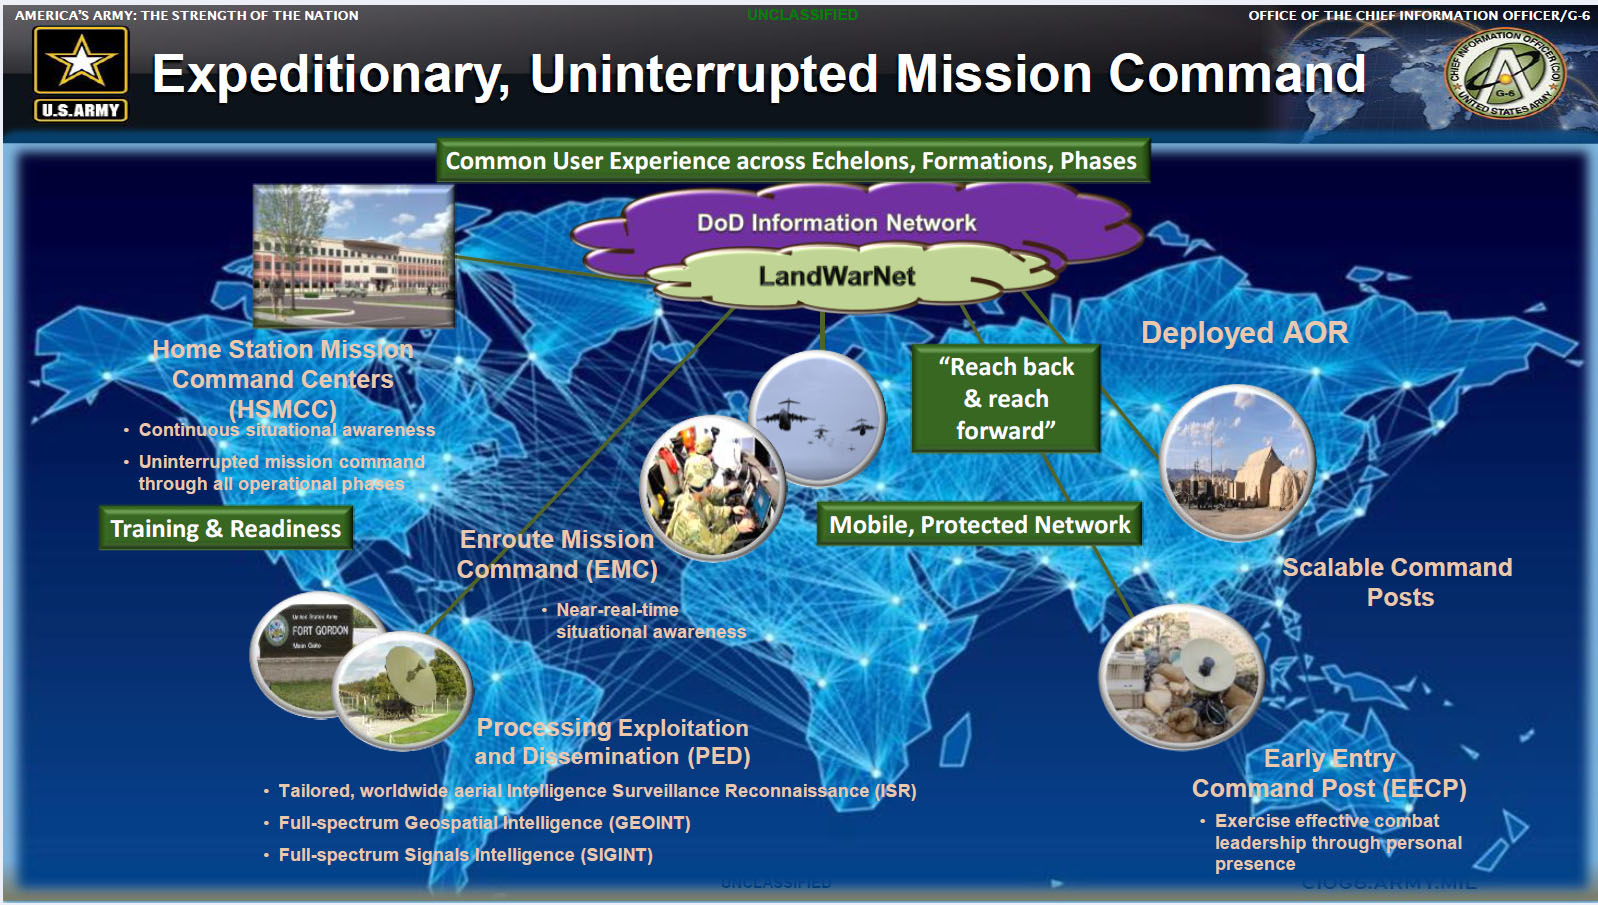 The end-state is to provide a fully equipped and functional set of command posts to enable the warfighting functions to be performed while at home station. The HSMCC Initiative will accelerate a standardized, efficient command post design for Force 2025.